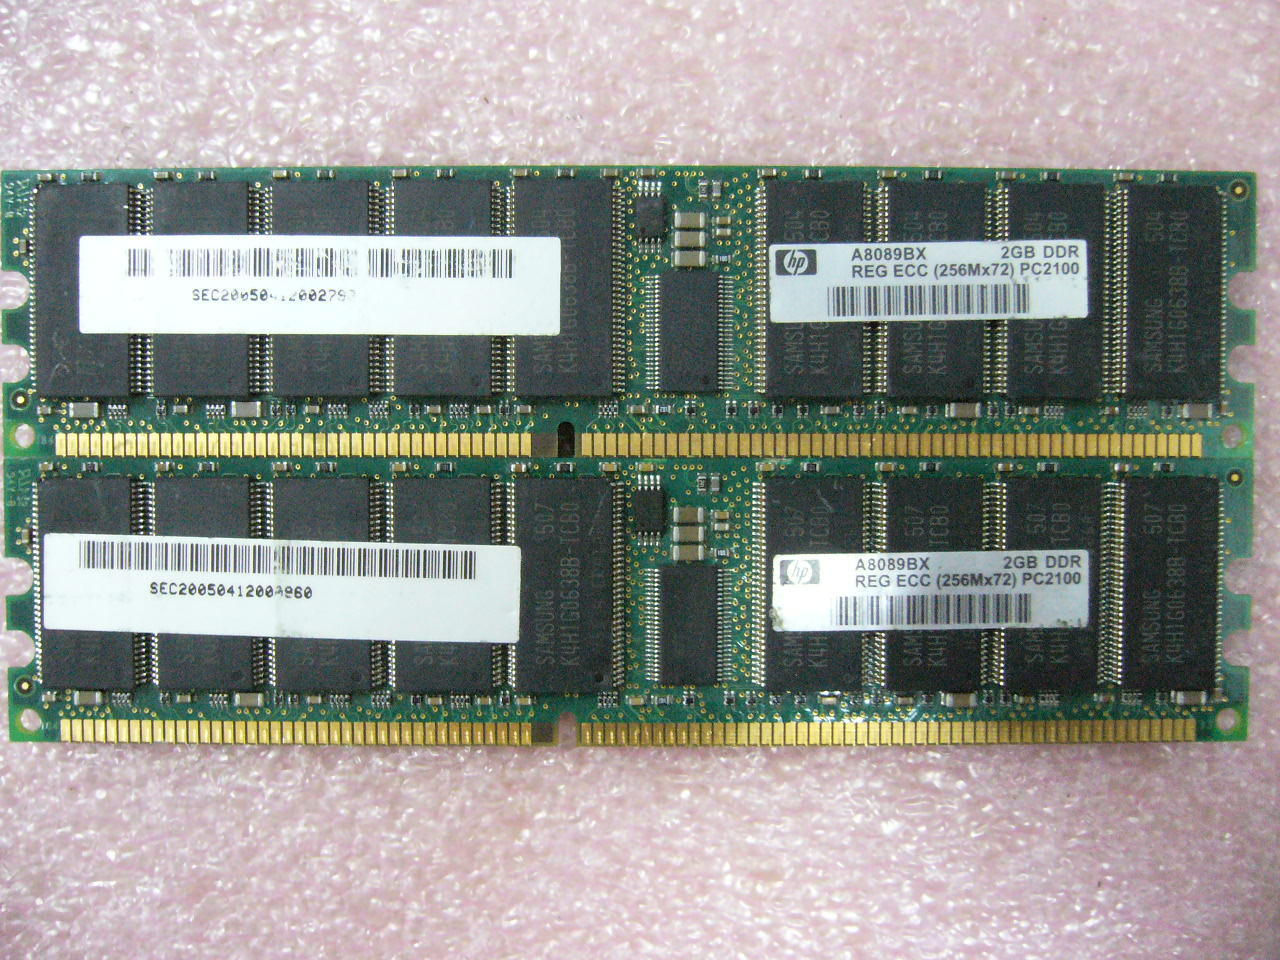 1x 2GB DDR 266 PC-2100R ECC Registered Server memory HP PN A8089BX